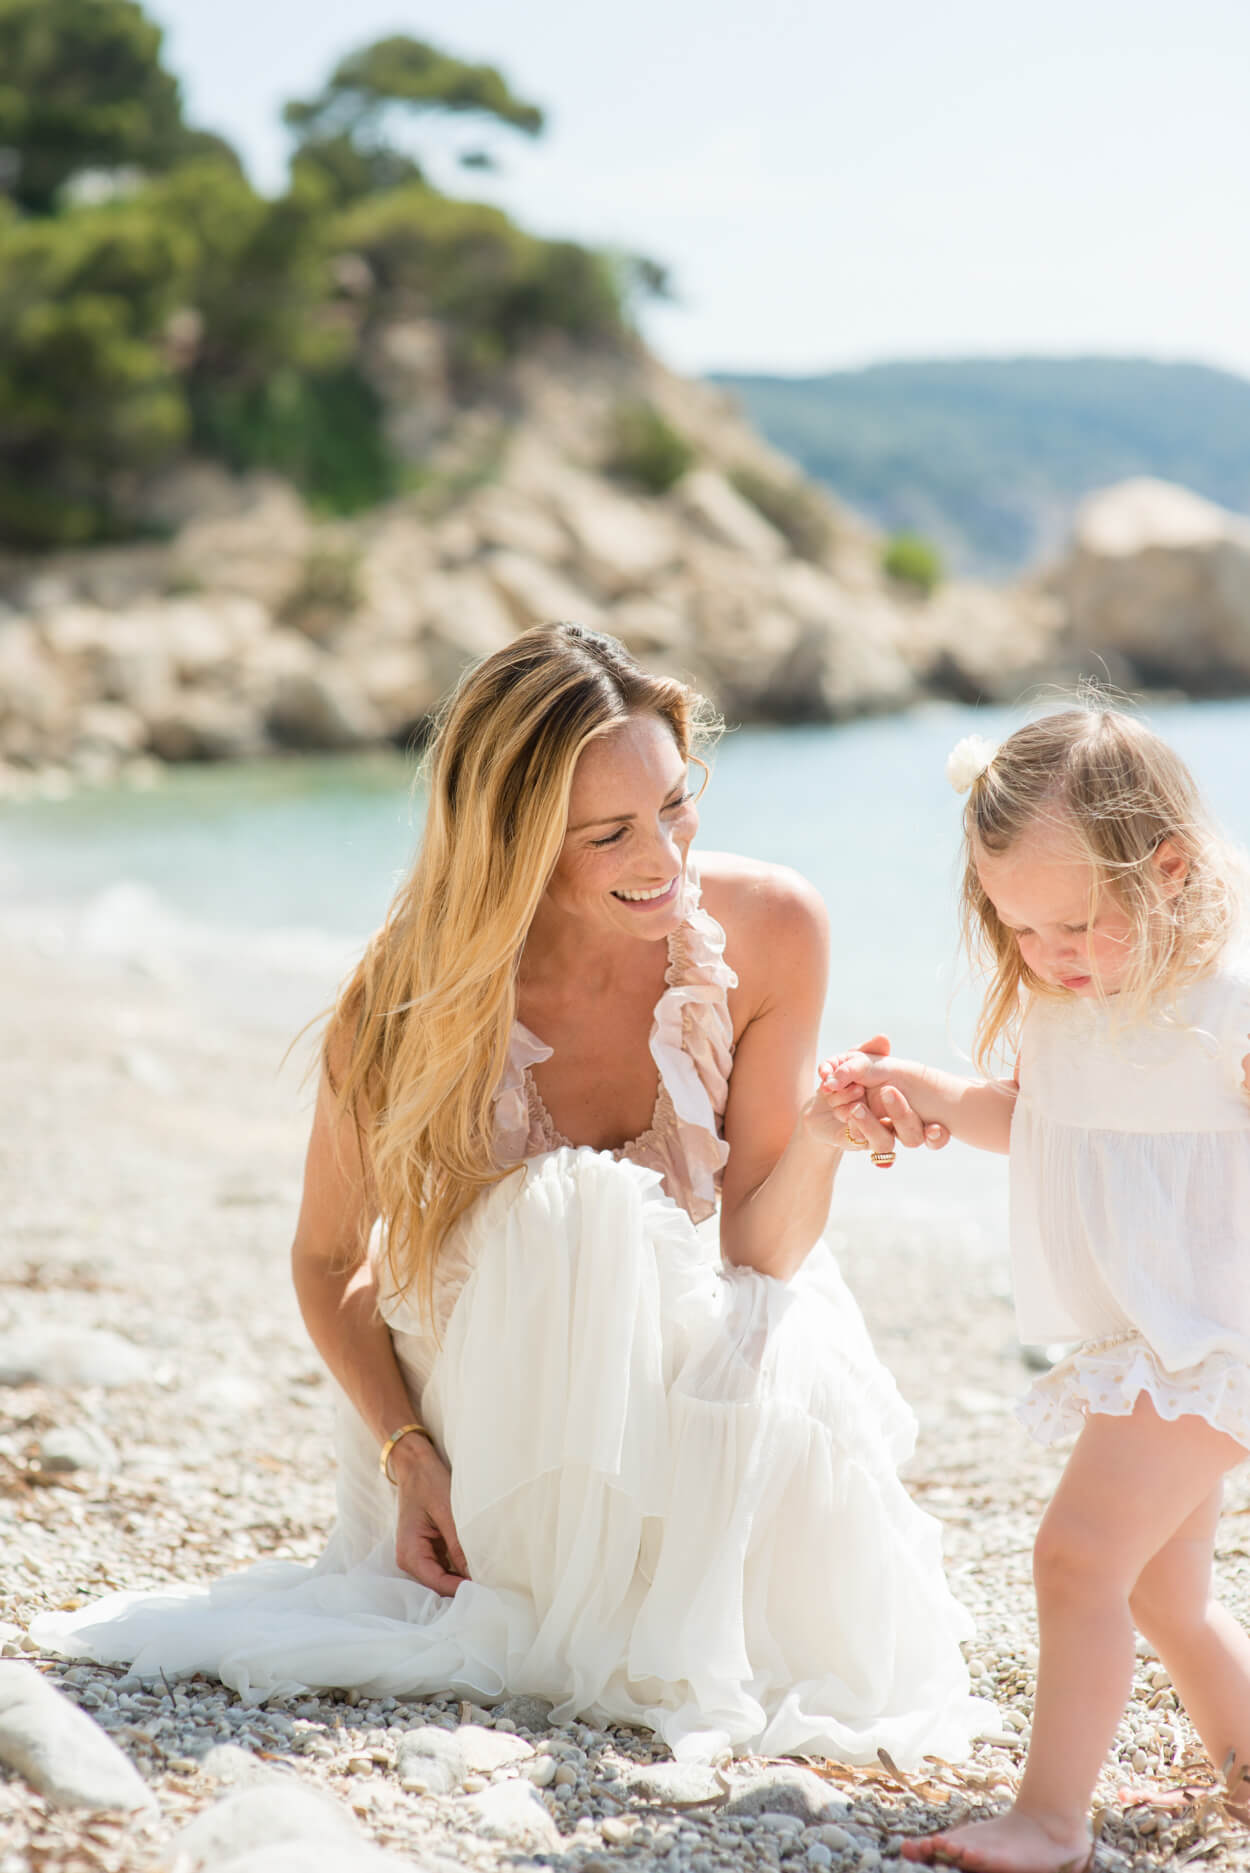 mother and daughter beach family portrait holiday home morning sunlight